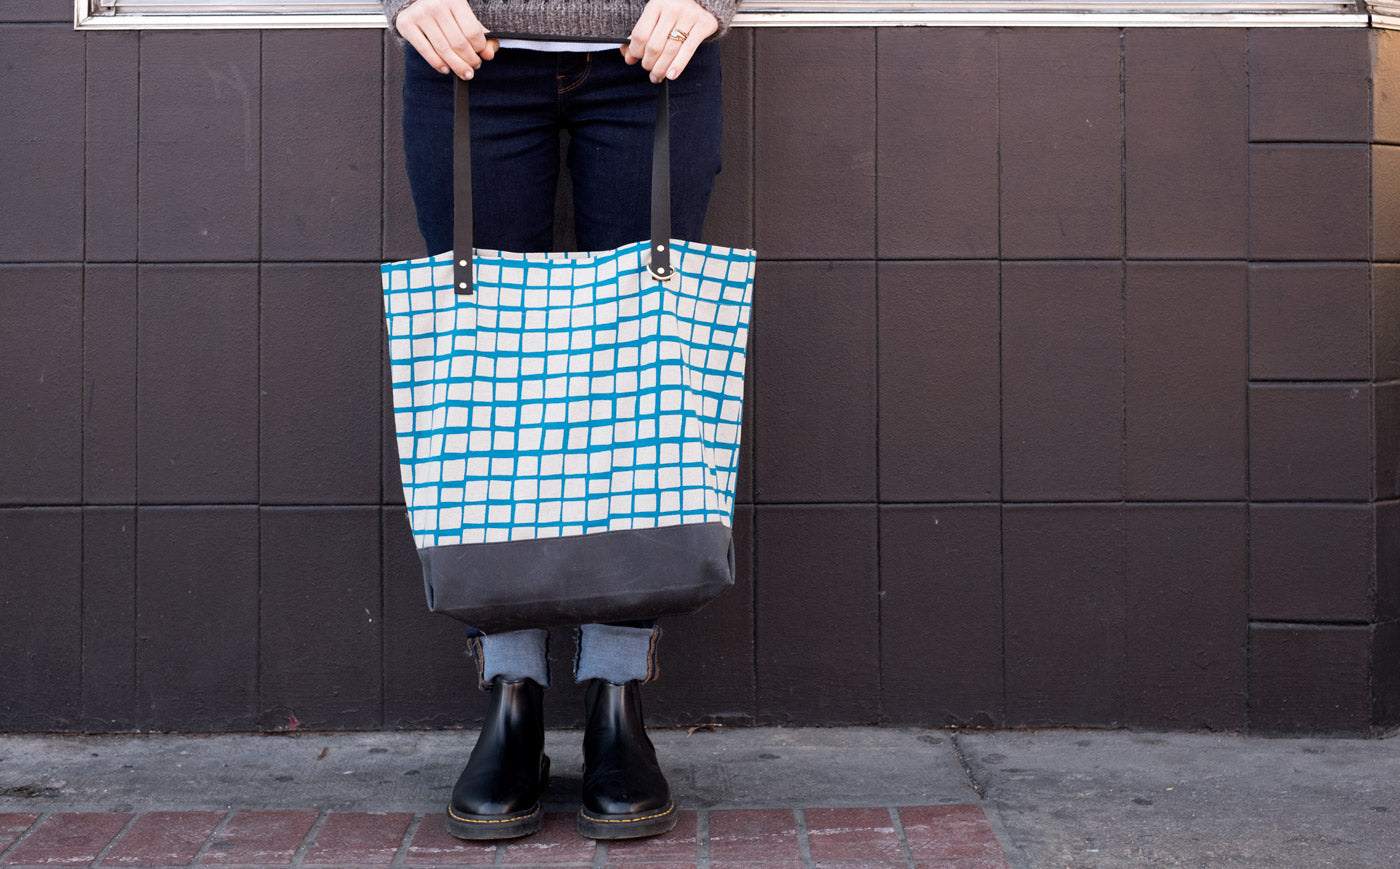 Hands Holding Katy Osterwald's Portsmith Tote